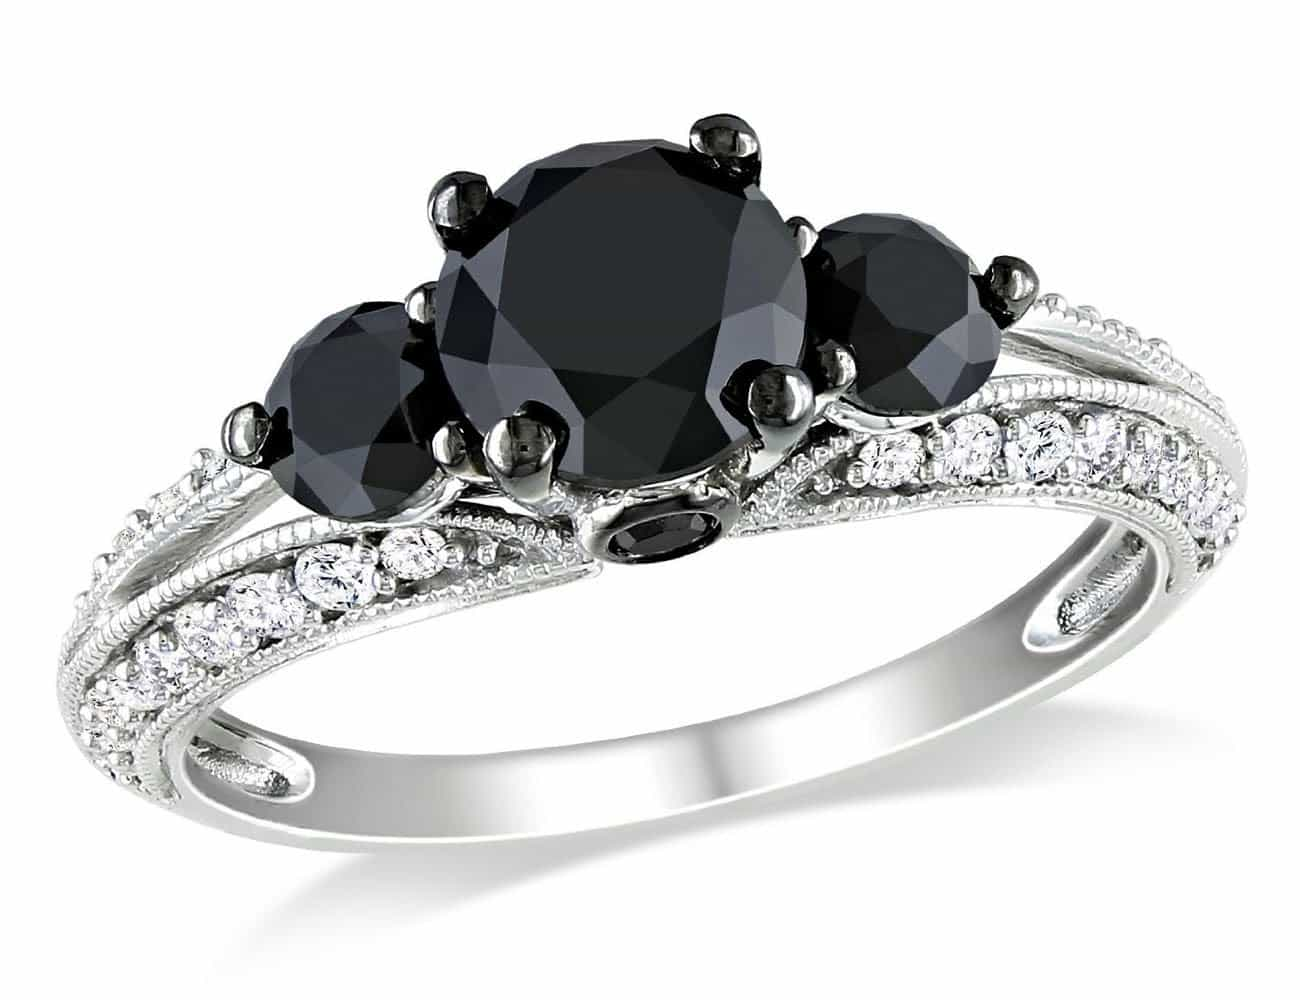 whitediamondplatinumwithband band carrie carrieringblack rings matching platinum wedding black round about diamonds diamond really gemvara copygemvarablack engagement with ring fun facts